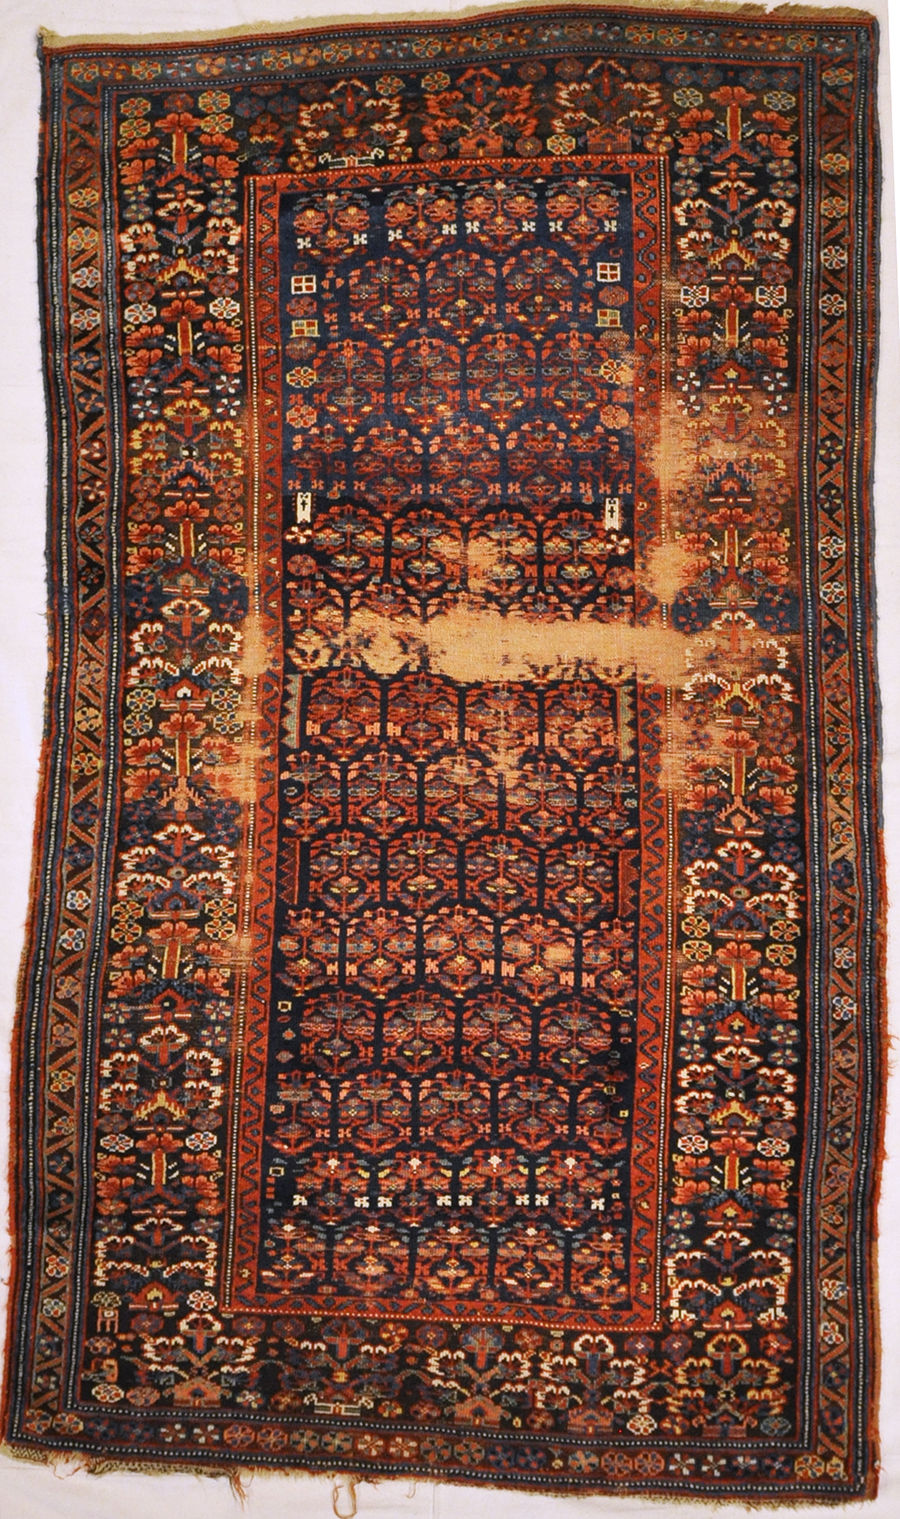 Shahsavan Rug Rugs and More